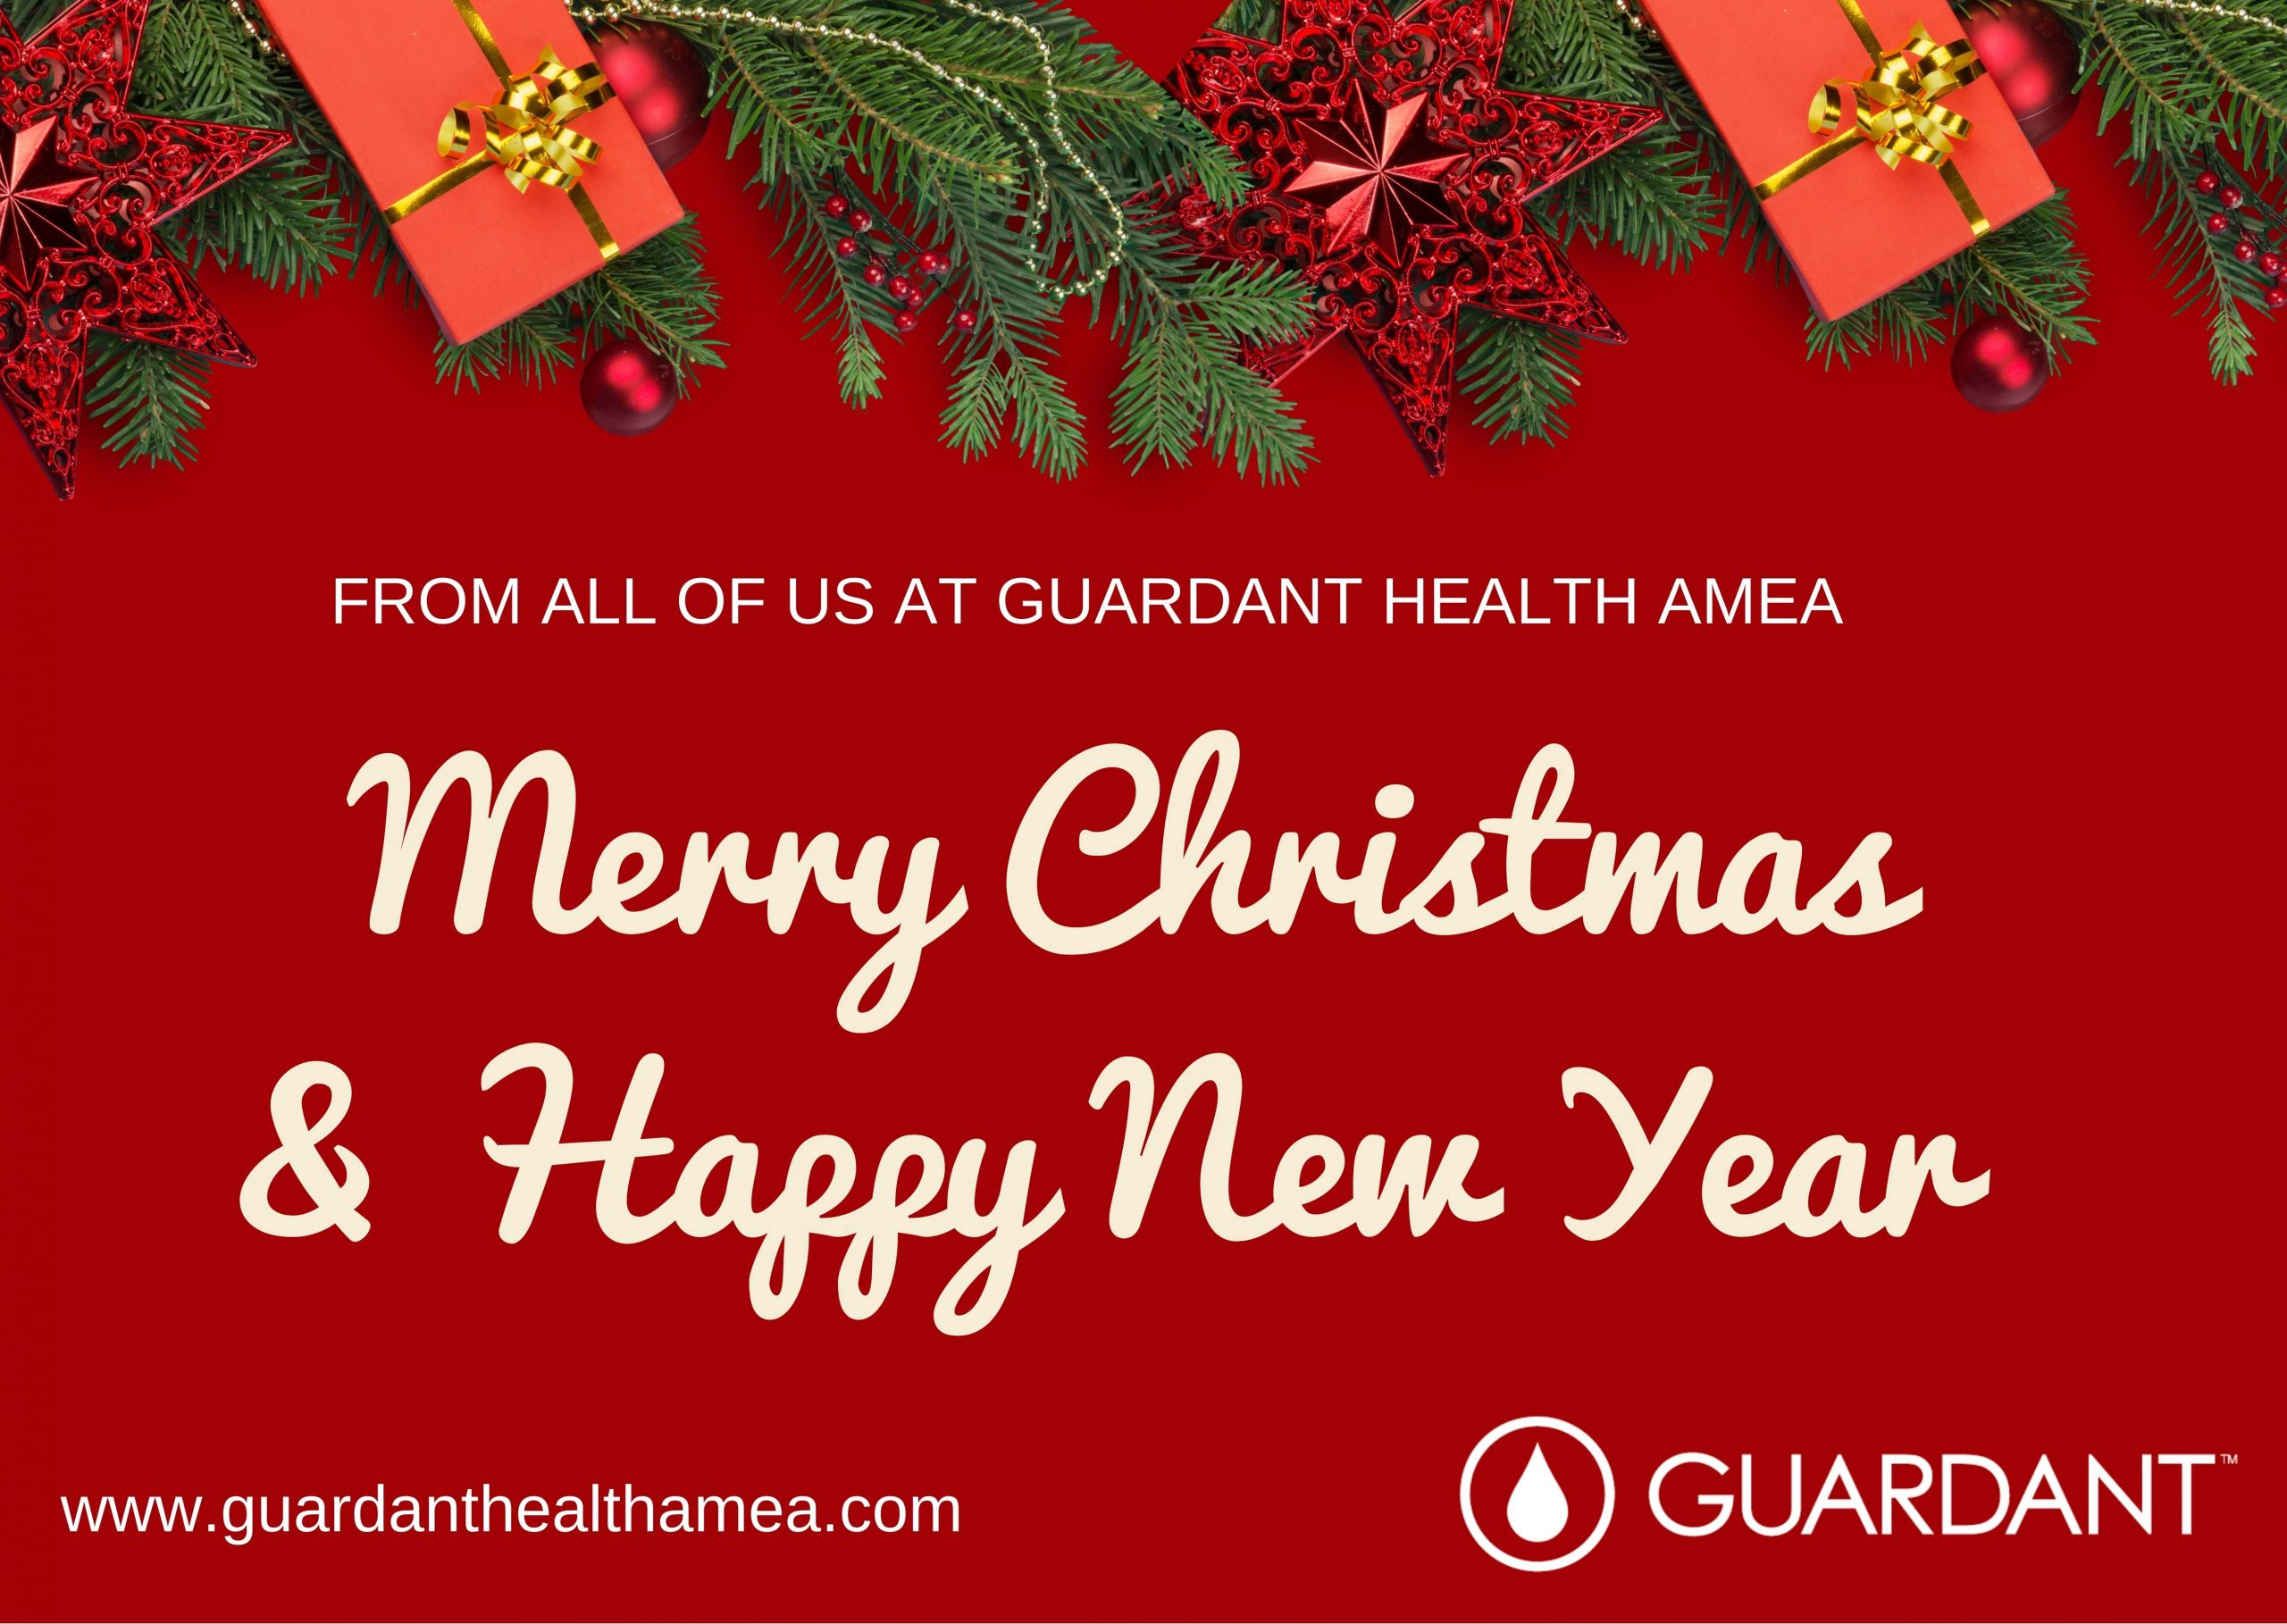 Merry Christmas and Happy New Year! – from all of us atguardanthealthamea.com